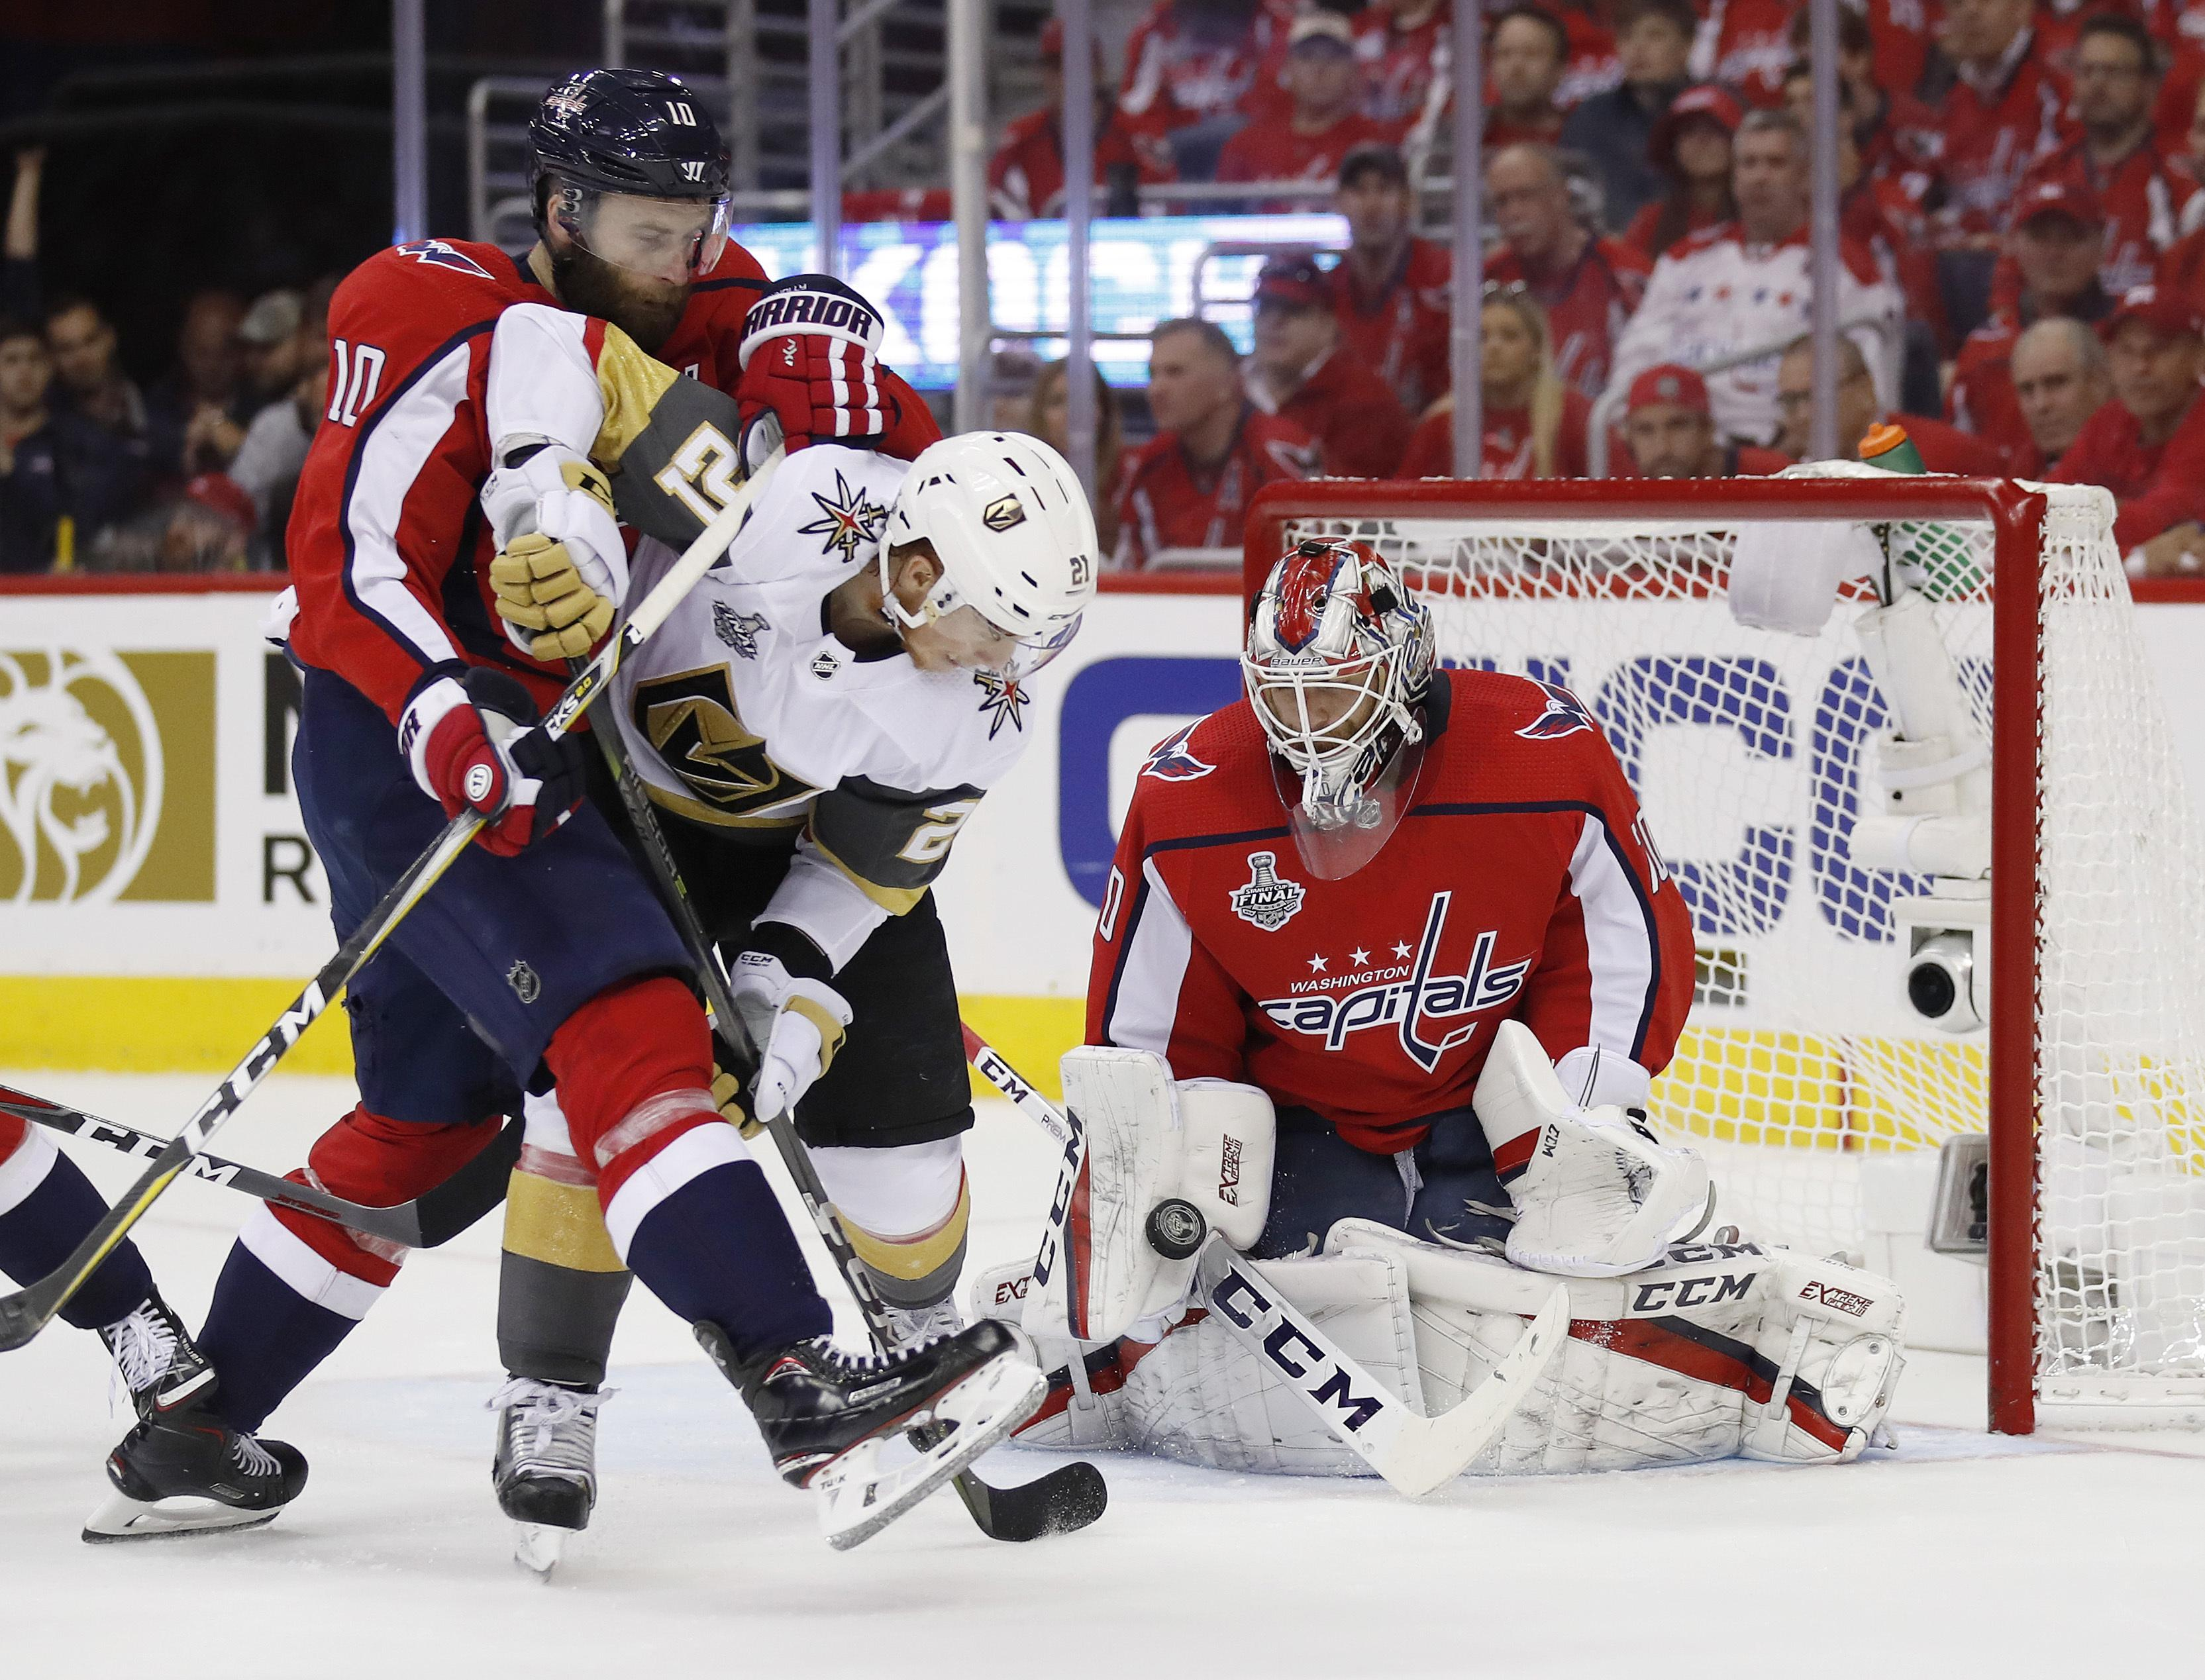 Ap Cp Survey Players Pan Delay Of Game Goalie Interference The